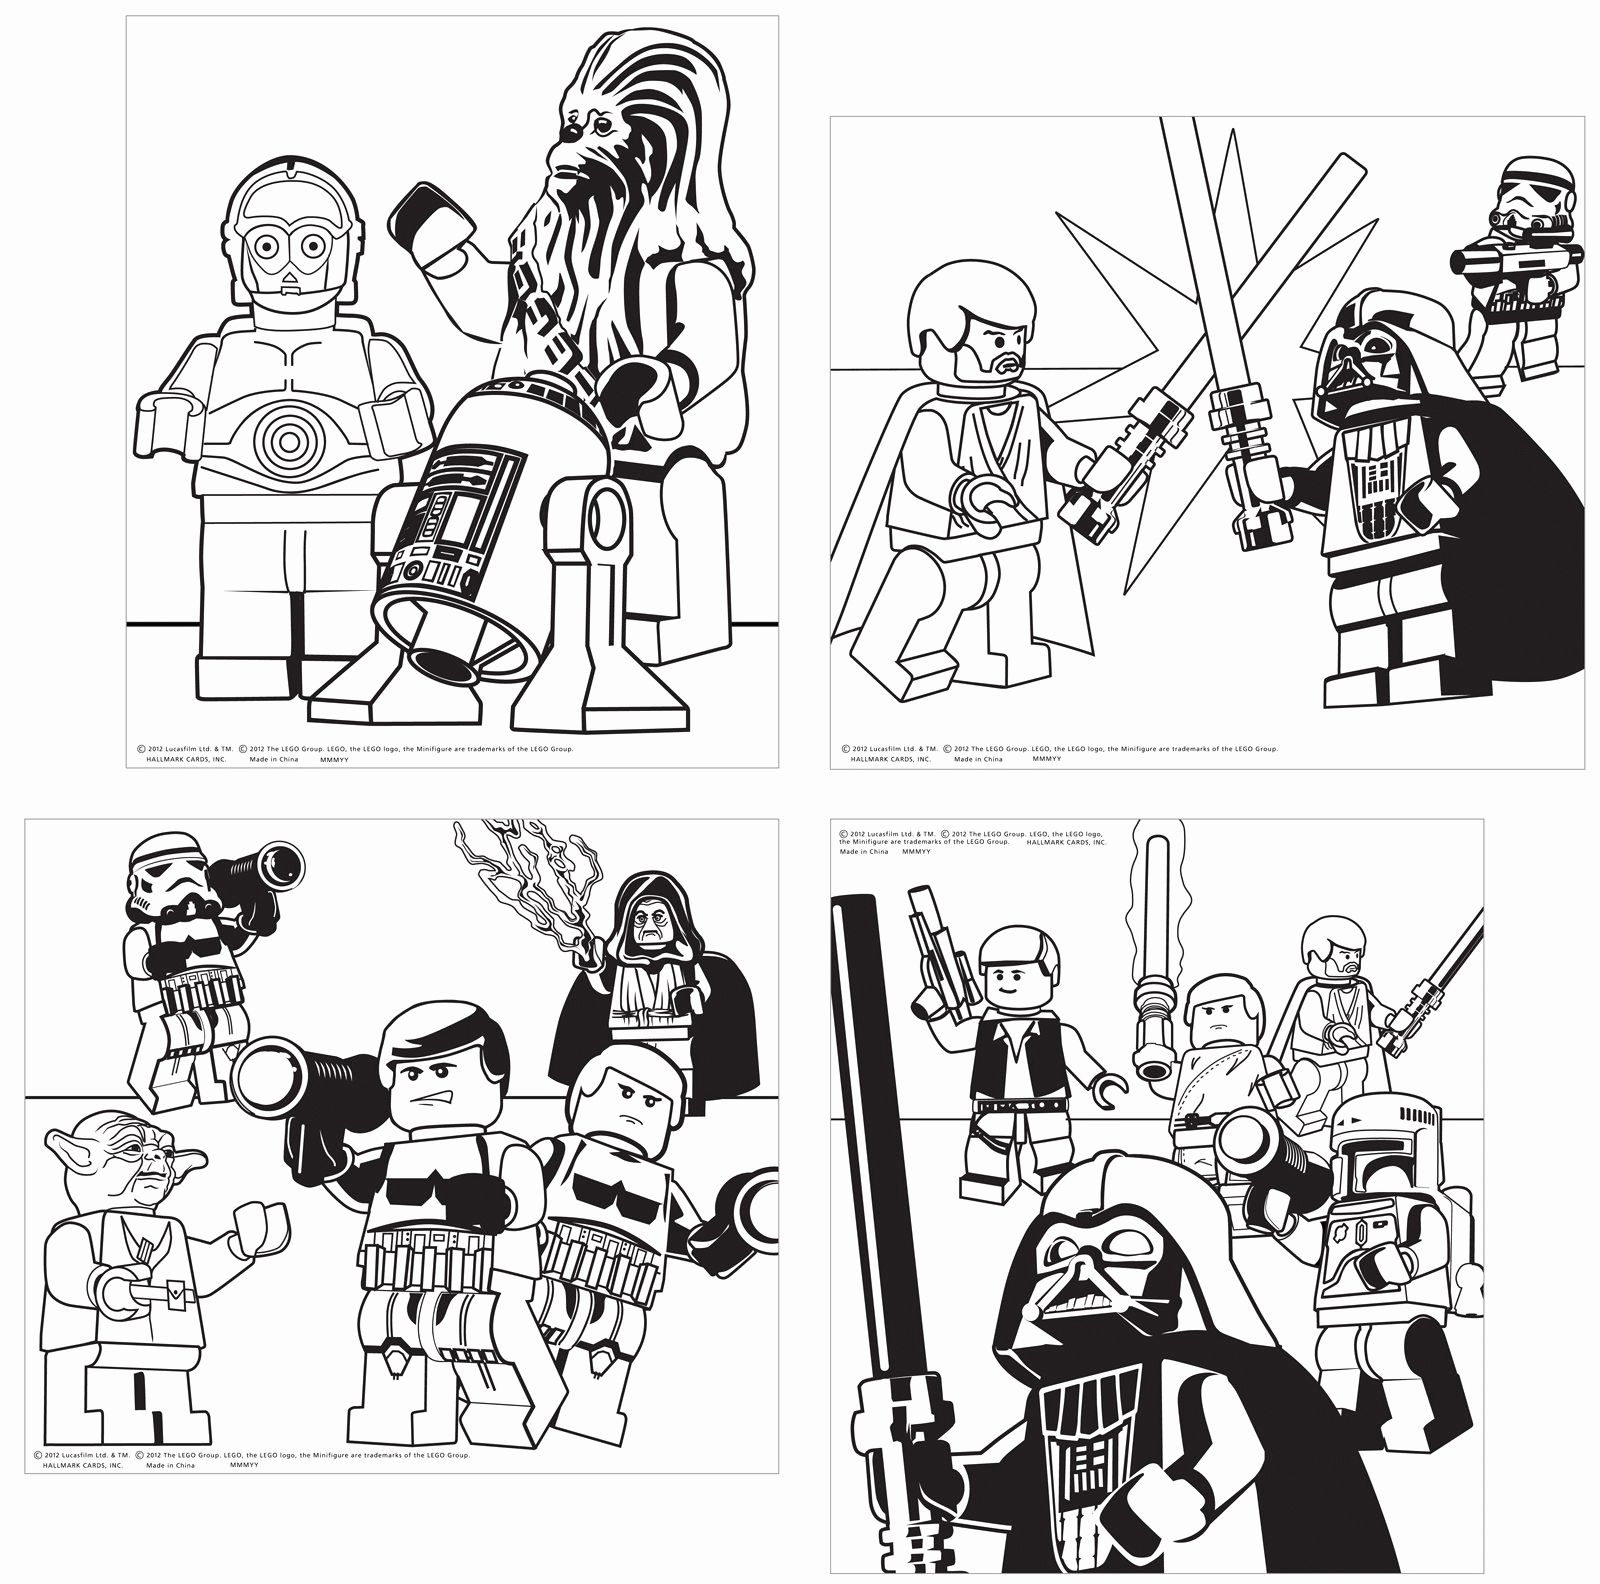 Star Wars Bb8 Coloring Pages Beautiful Lego Star Wars Coloring Pages Free Star Wars Coloring Book Star Wars Colors Lego Coloring Pages